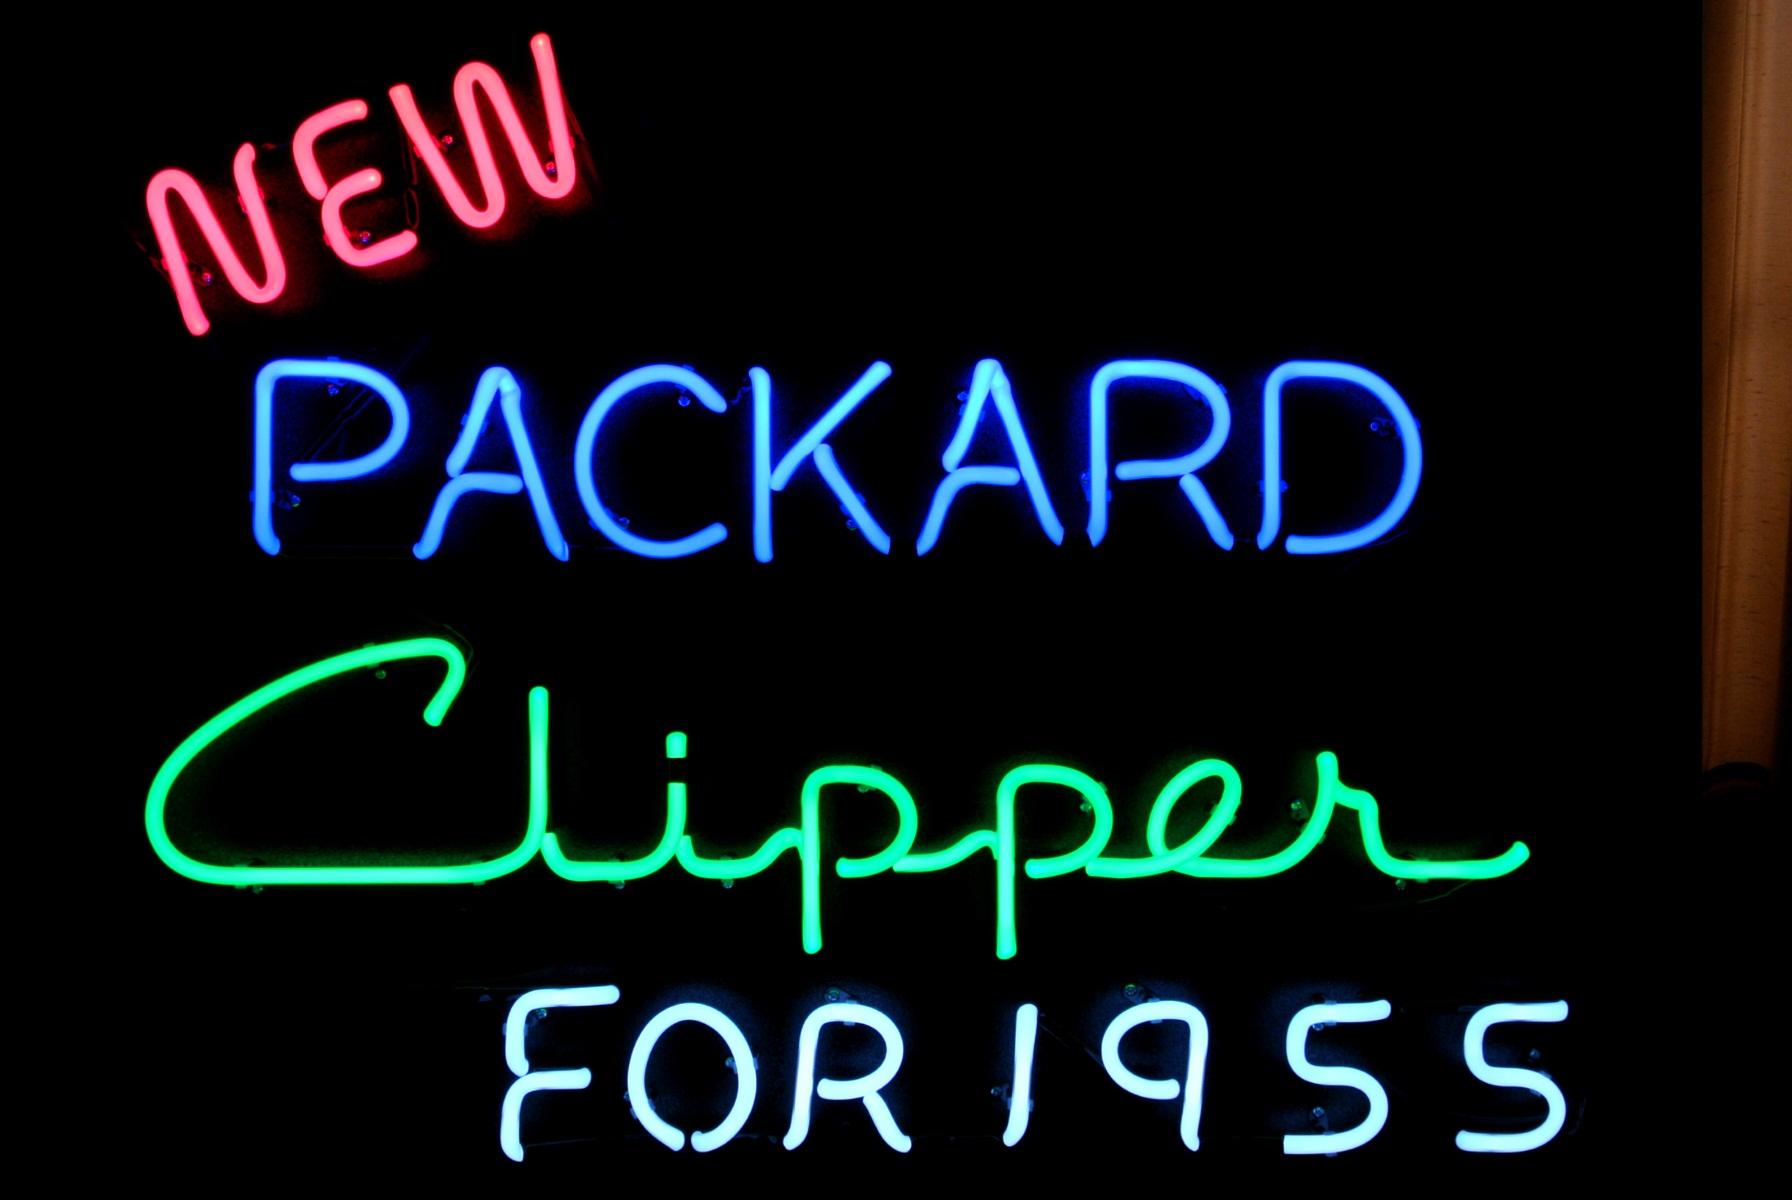 New Packard Clipper for 1955 - Packard Dealer Neon Sign by John Barton - former Packard New Car Dealer - BartonNeonMagic.com